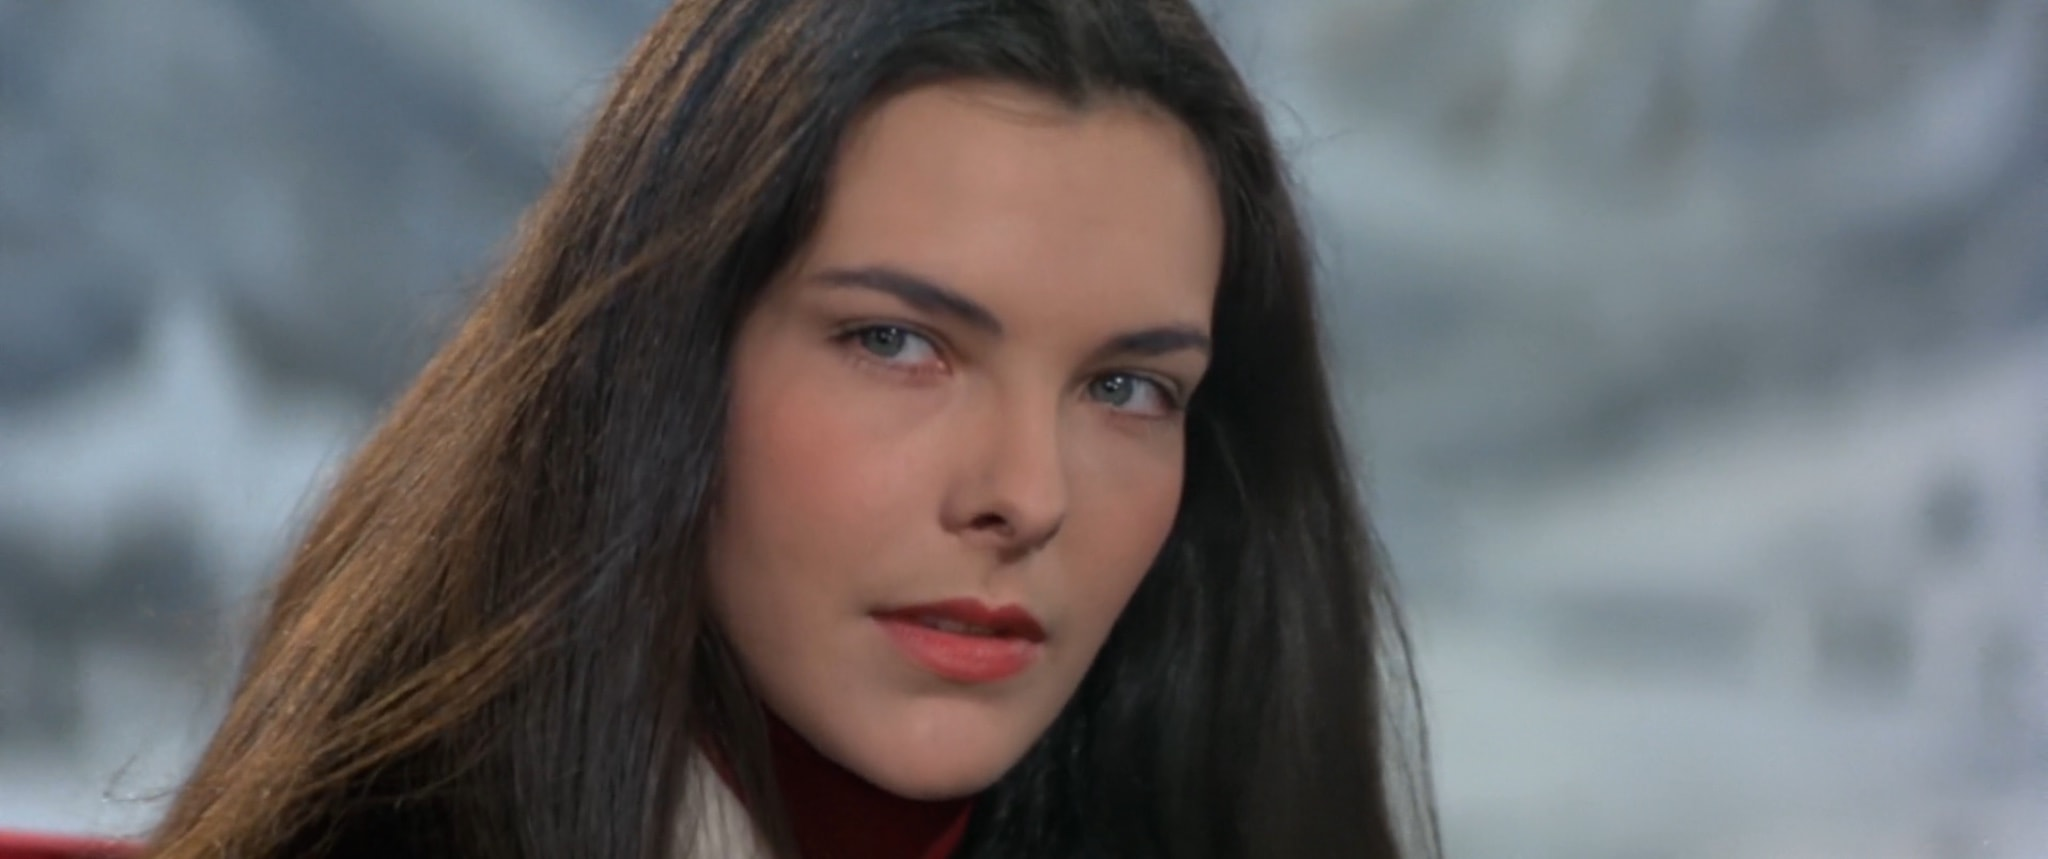 Carole Bouquet Widescreen